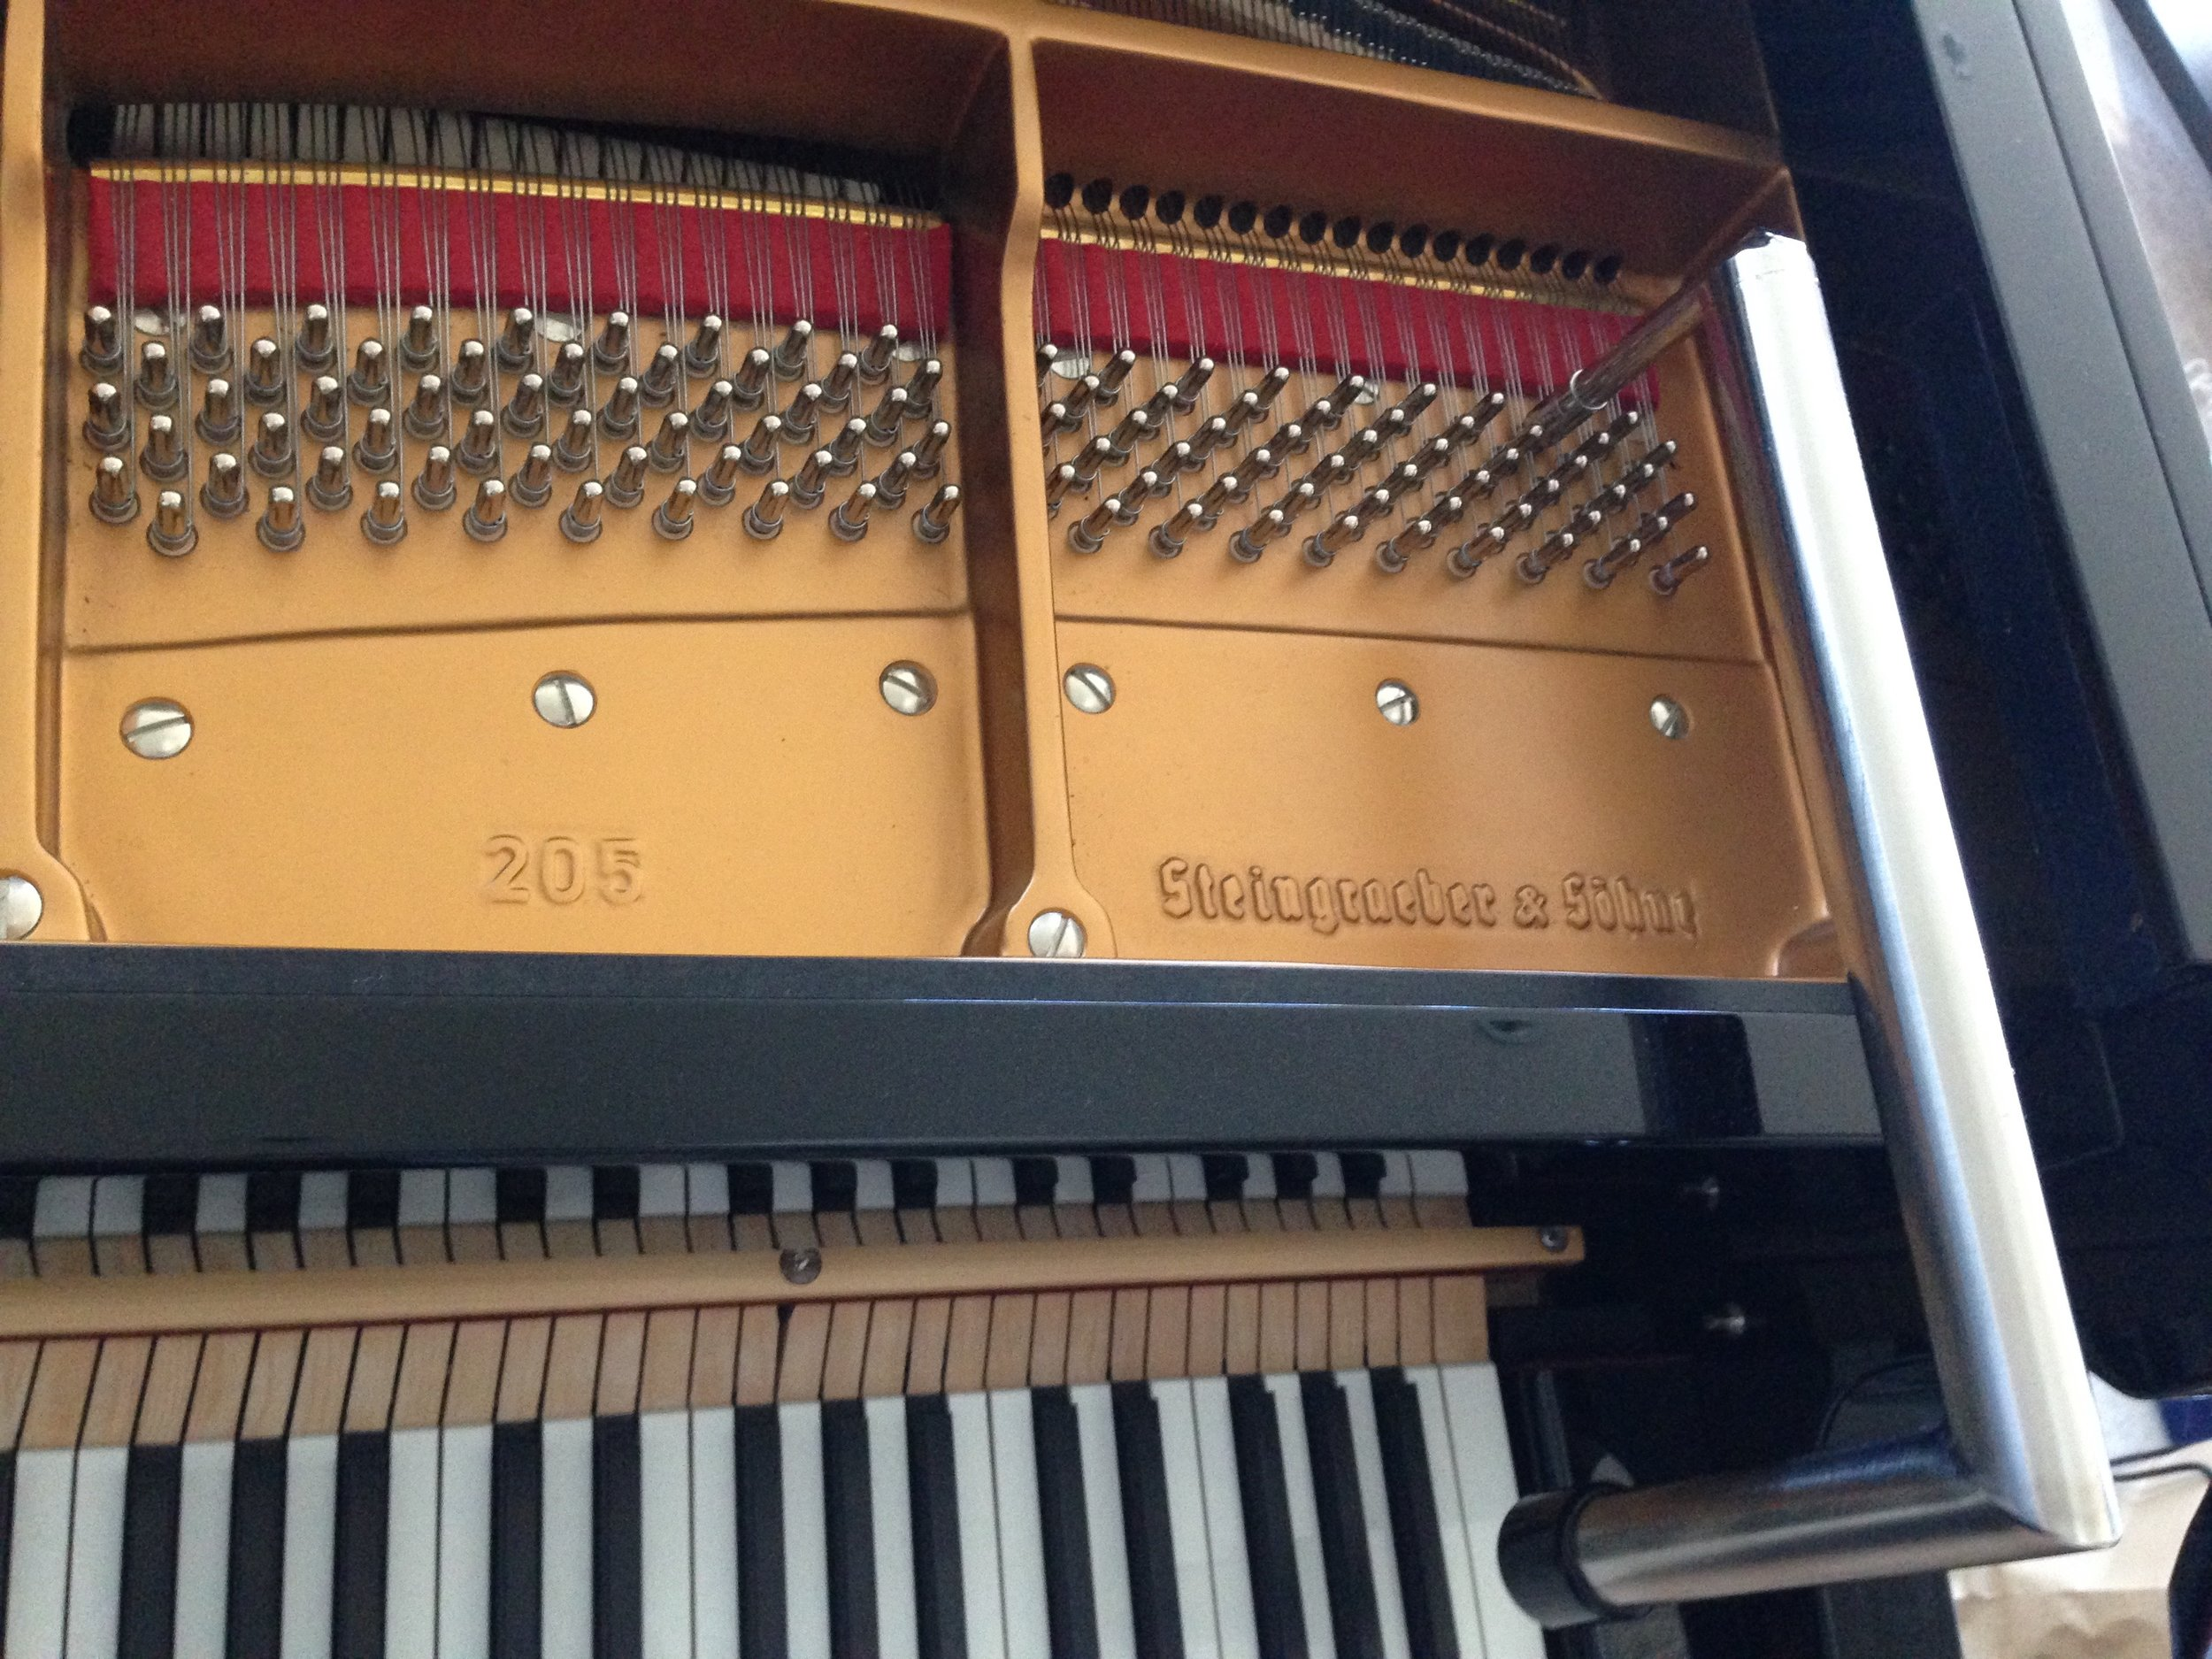 It reaches the treble pins in most large pianos...